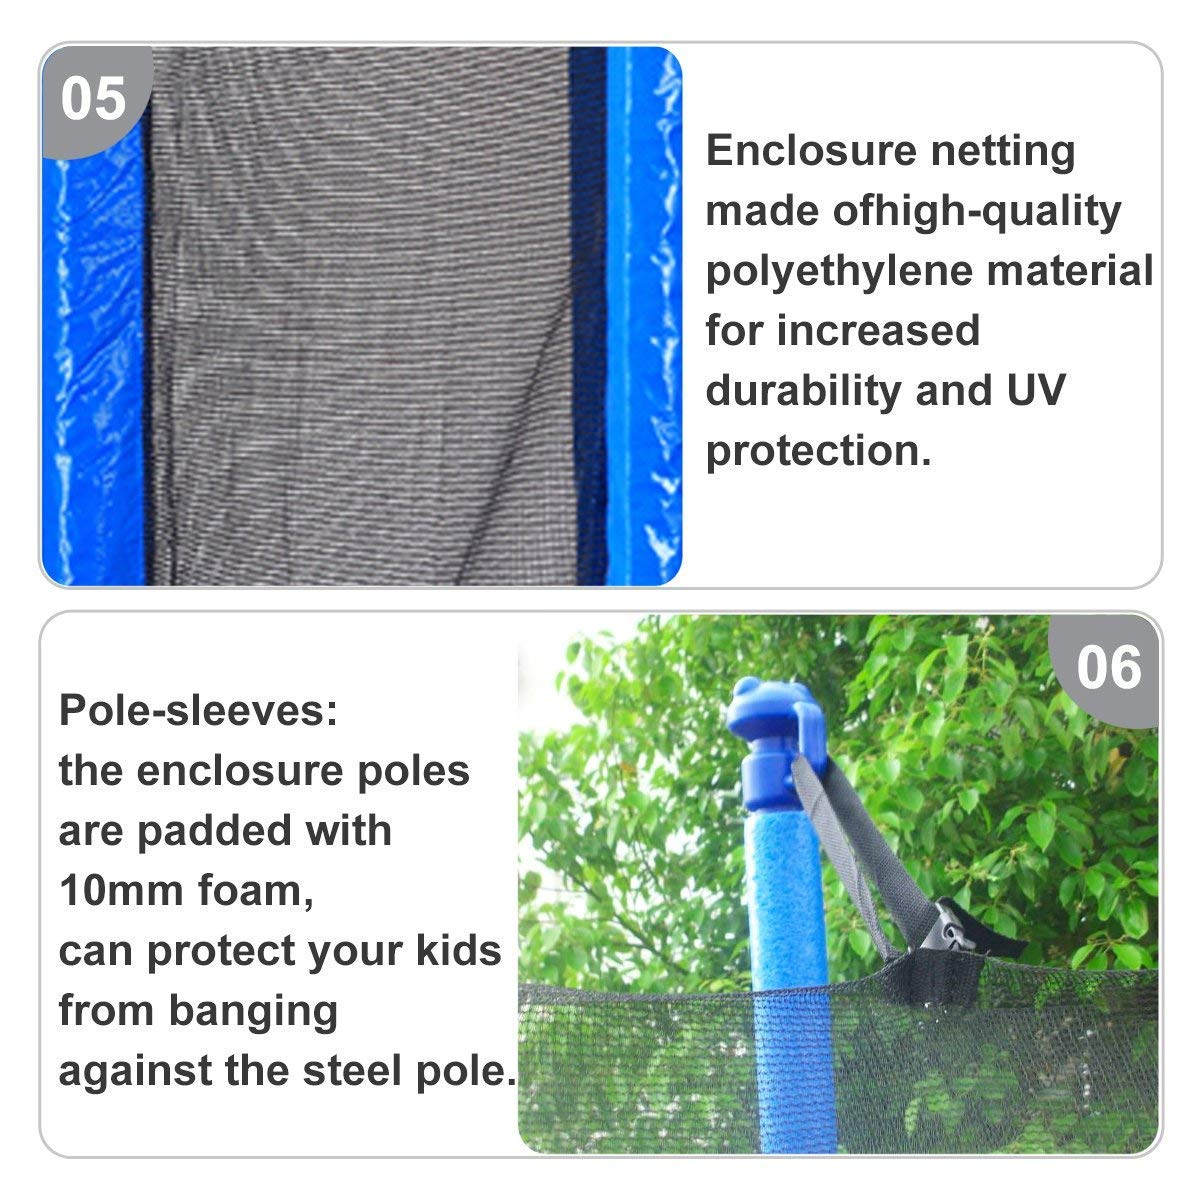 Zupapa 15FT 14FT 12FT TUV Approved Kids Trampoline with Enclosure net, Ladder Pole Safety Pad Jumping Mat Spring Pull T-Hook, Include All Accessories, Great Outdoor Backyard Trampoline (15FT) by Zupapa (Image #8)